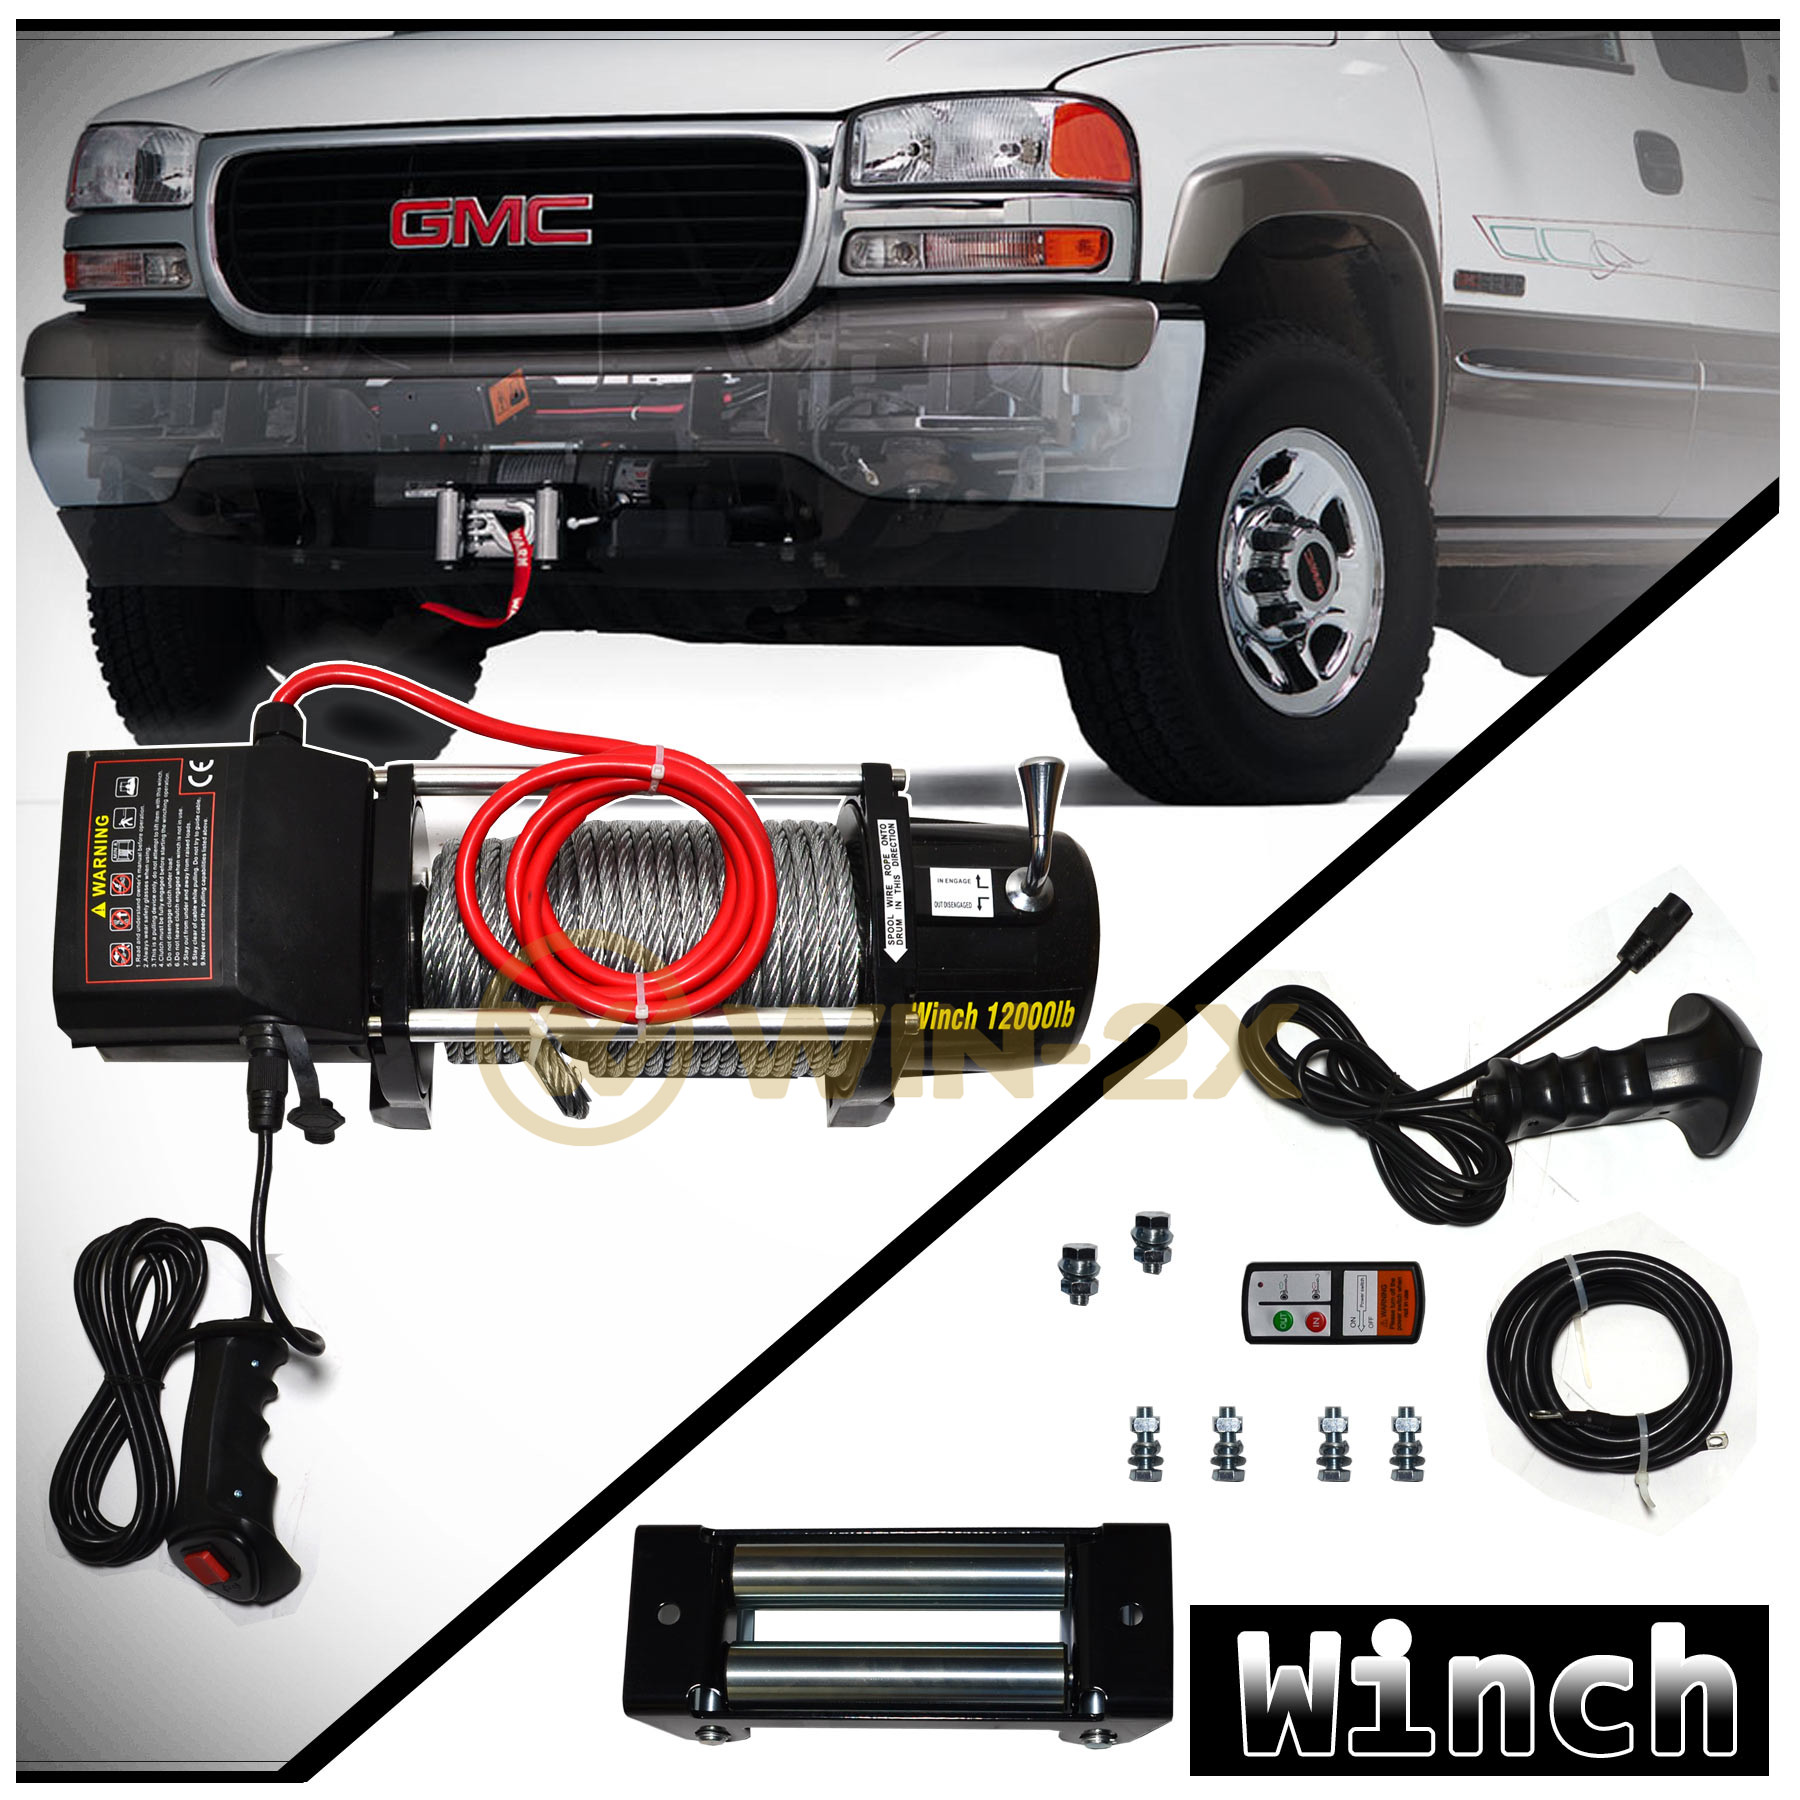 Detalles Acerca De Win 2x 12000lb 12v Electric Recovery Winch For Truck Suv Van Rv Trailer Bus Car